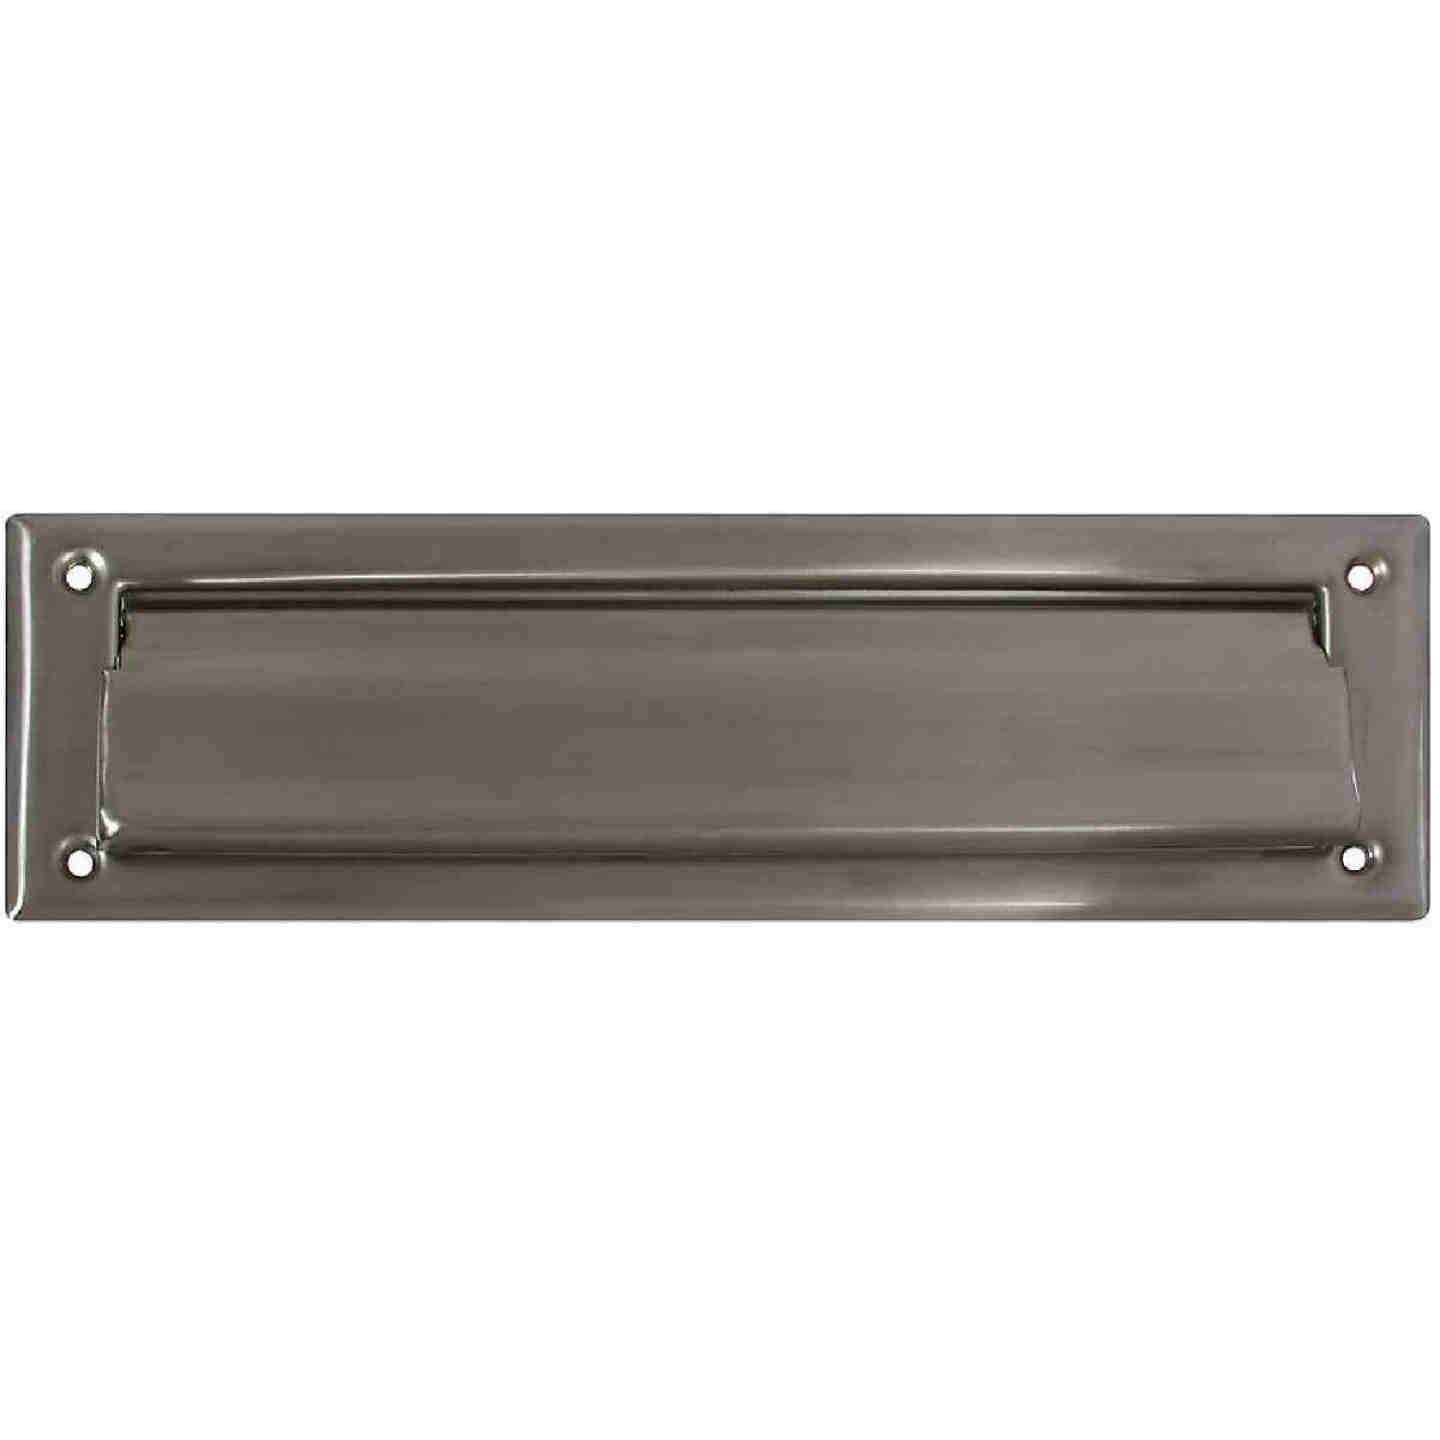 National 2 In. x 11 In. Satin Nickel Mail Slot Image 1